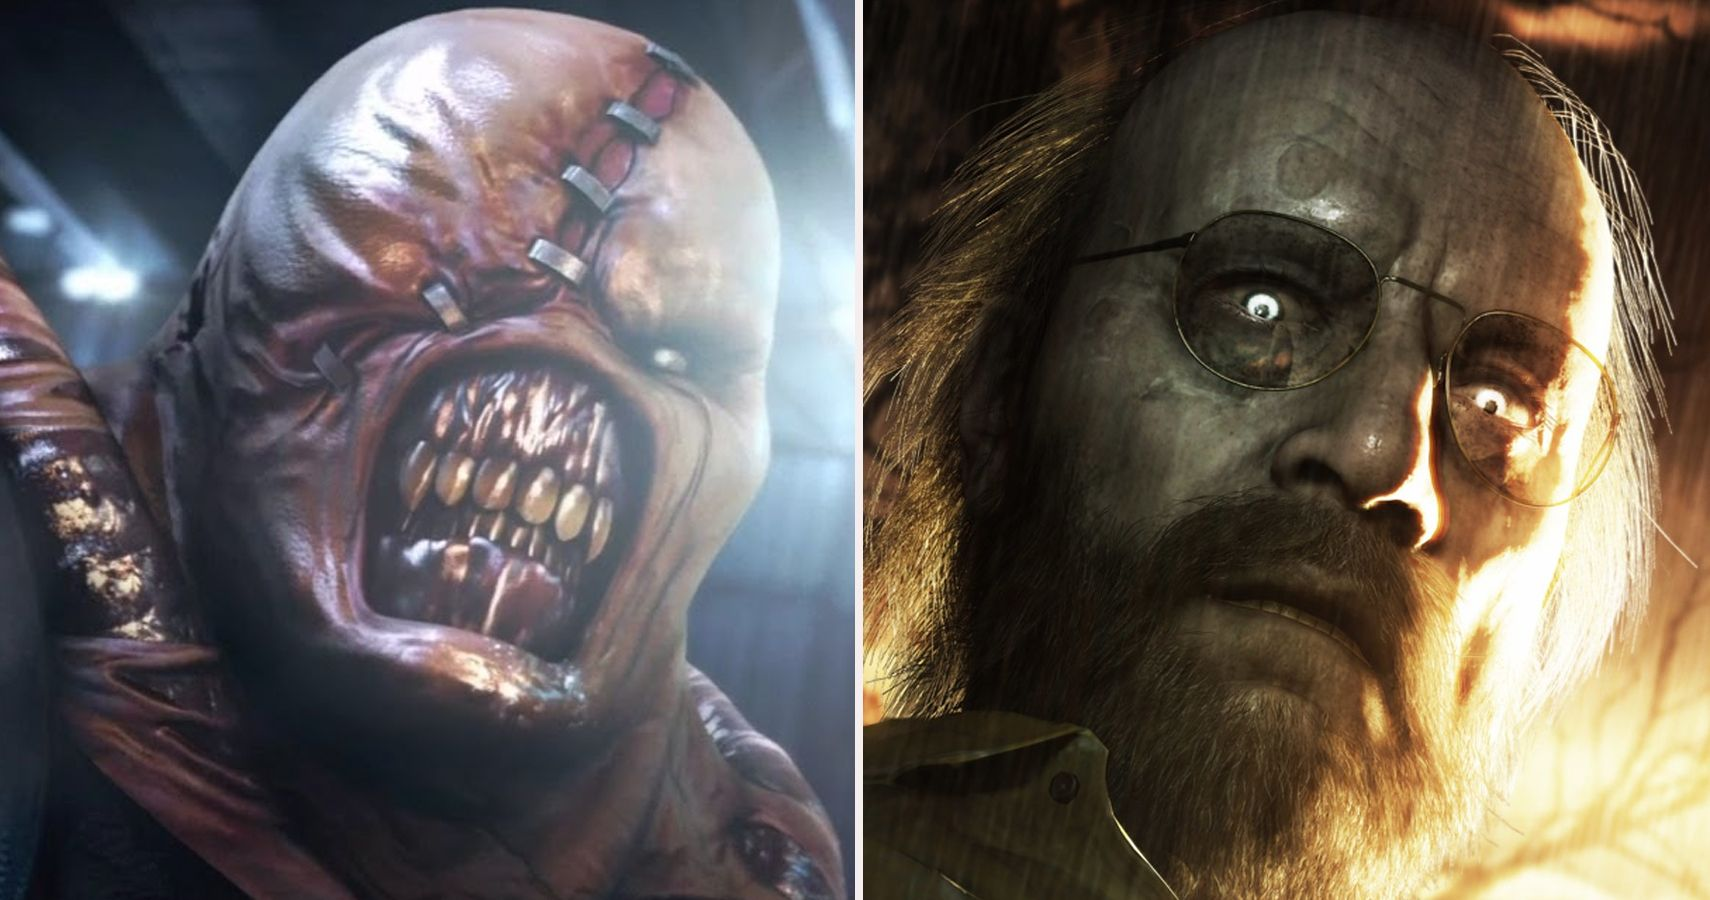 Resident Evil: The 5 Most Powerful Bosses (& The 5 Weakest)